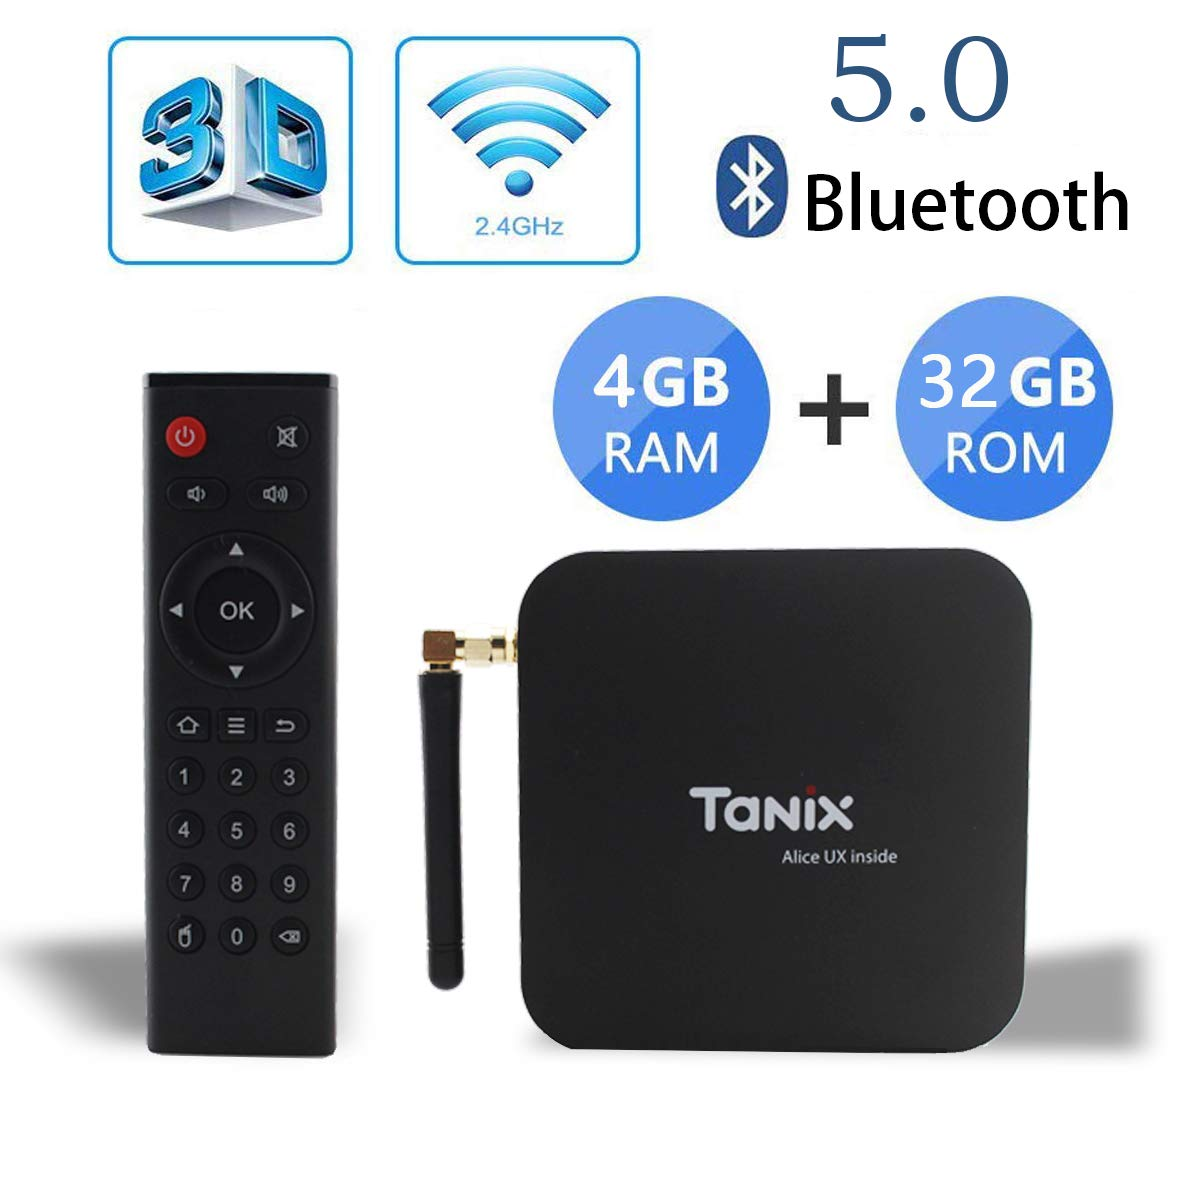 Android 9 0 TV Box,Tanix TX6 TV Box 4GB RAM(DDR3) 32GB ROM BT5 0 Dual WiFi  2 4G+5G Quad Core 1080p/4K/6K/HDR Smart TV Media Box USB 3 0